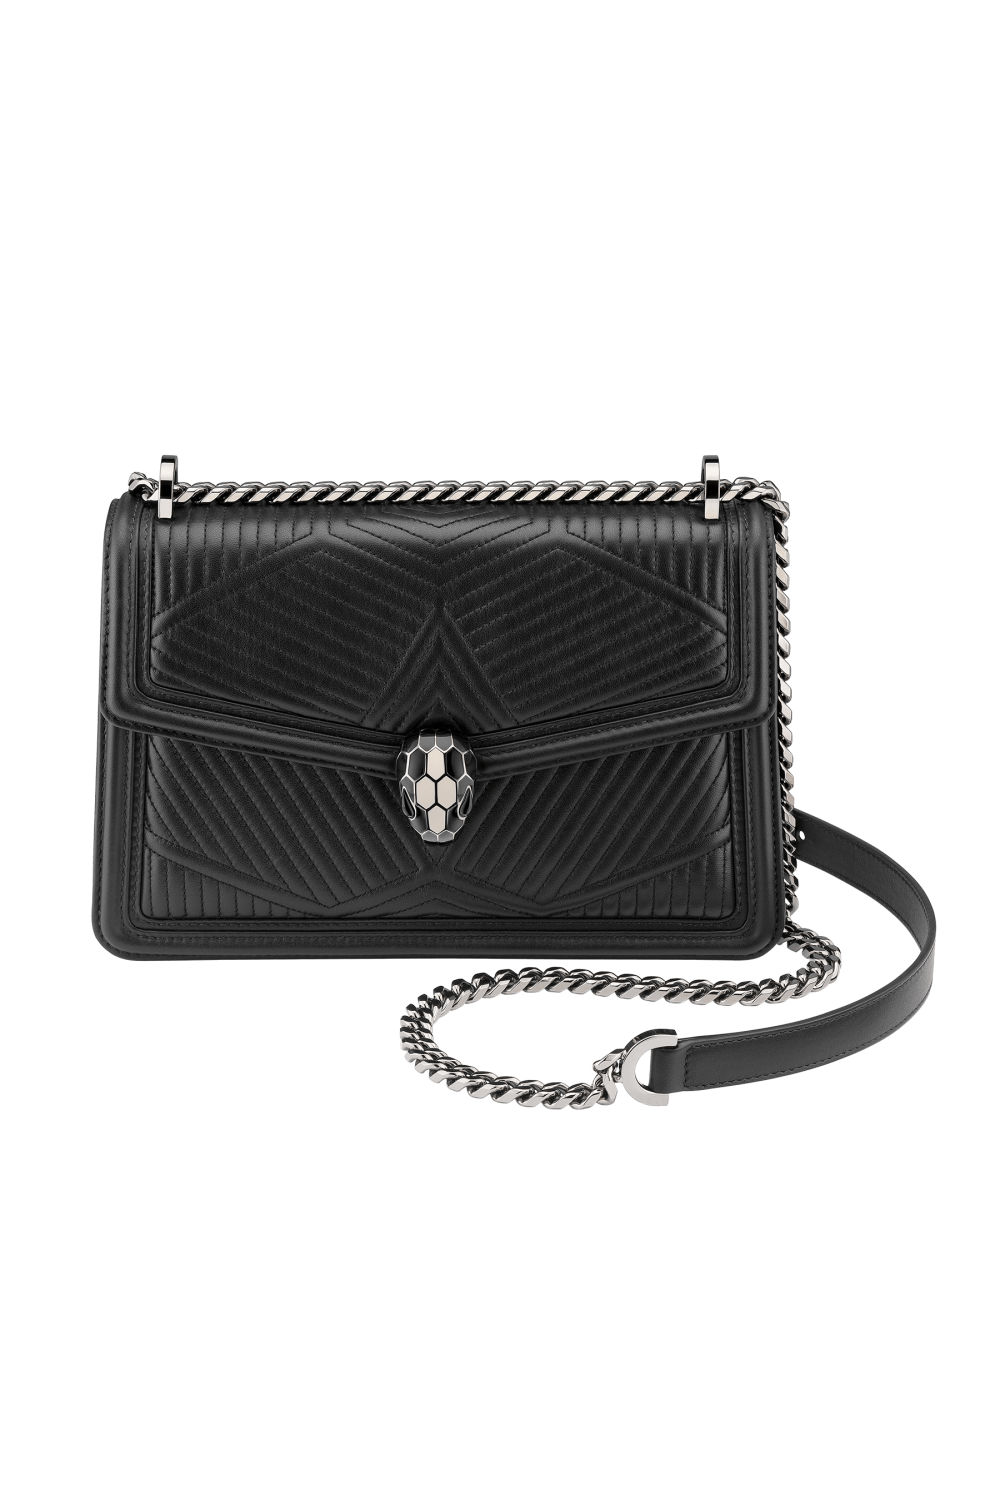 Bulgari Serpenti Diamond Blast Shoulder Bag Black